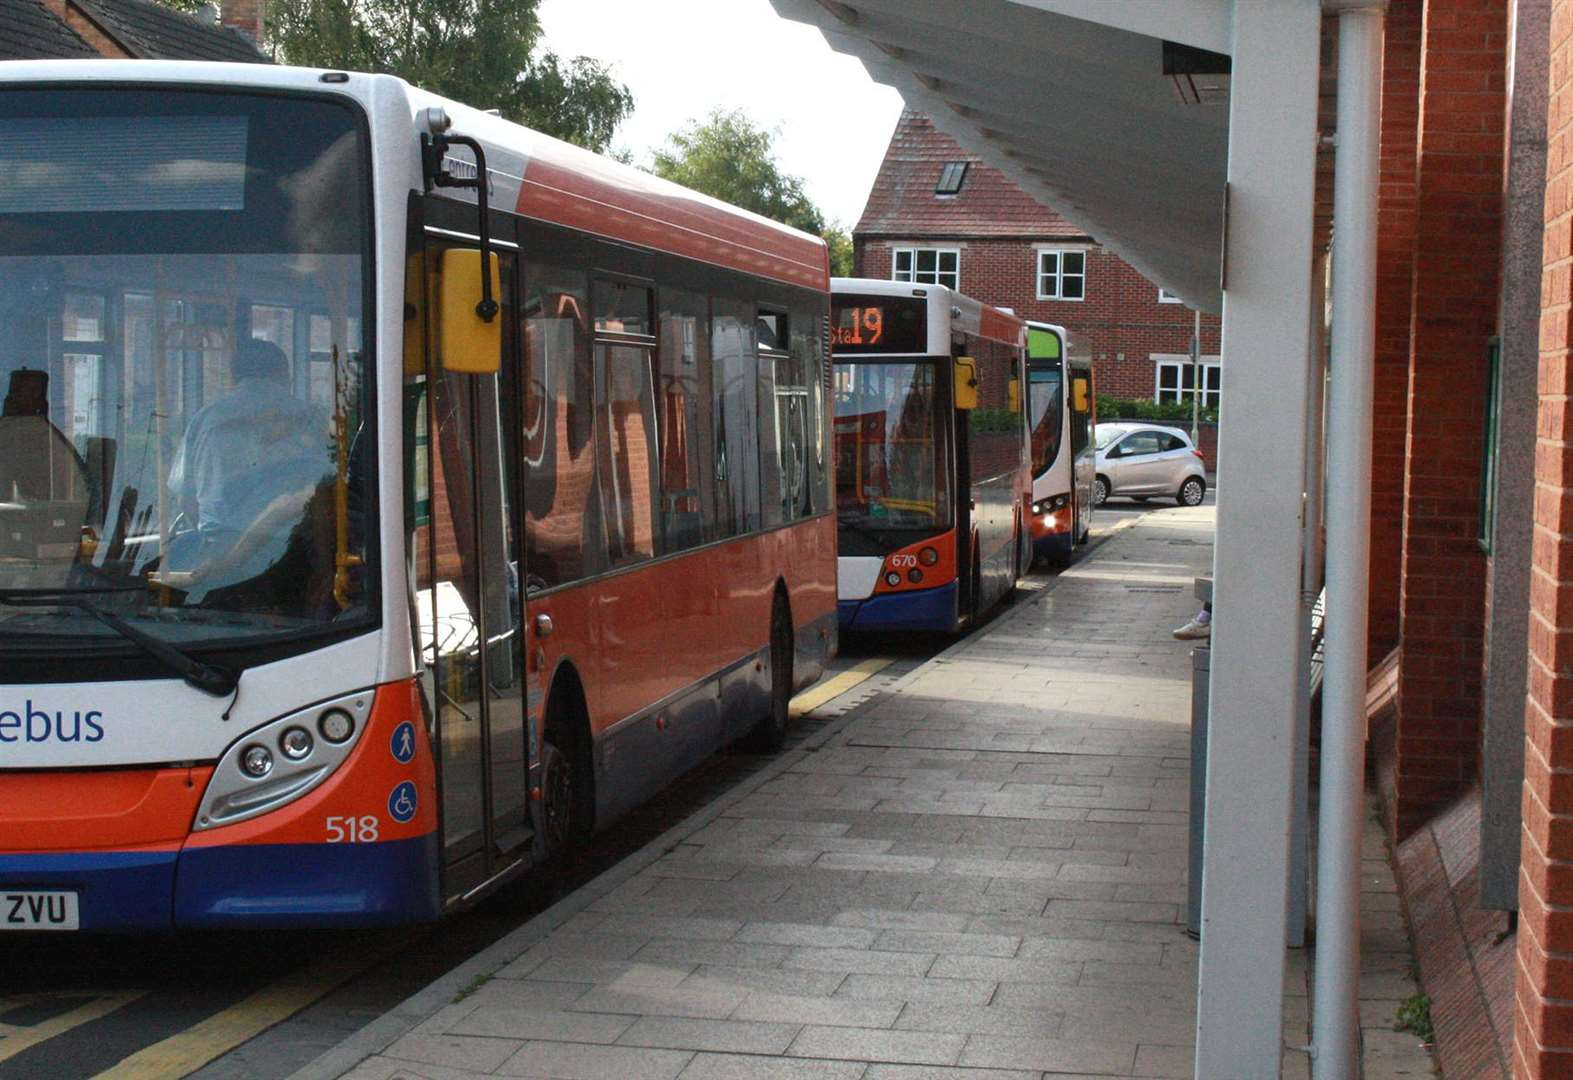 Oakham Bus Station introduces change to opening hours to discourage anti-social behaviour